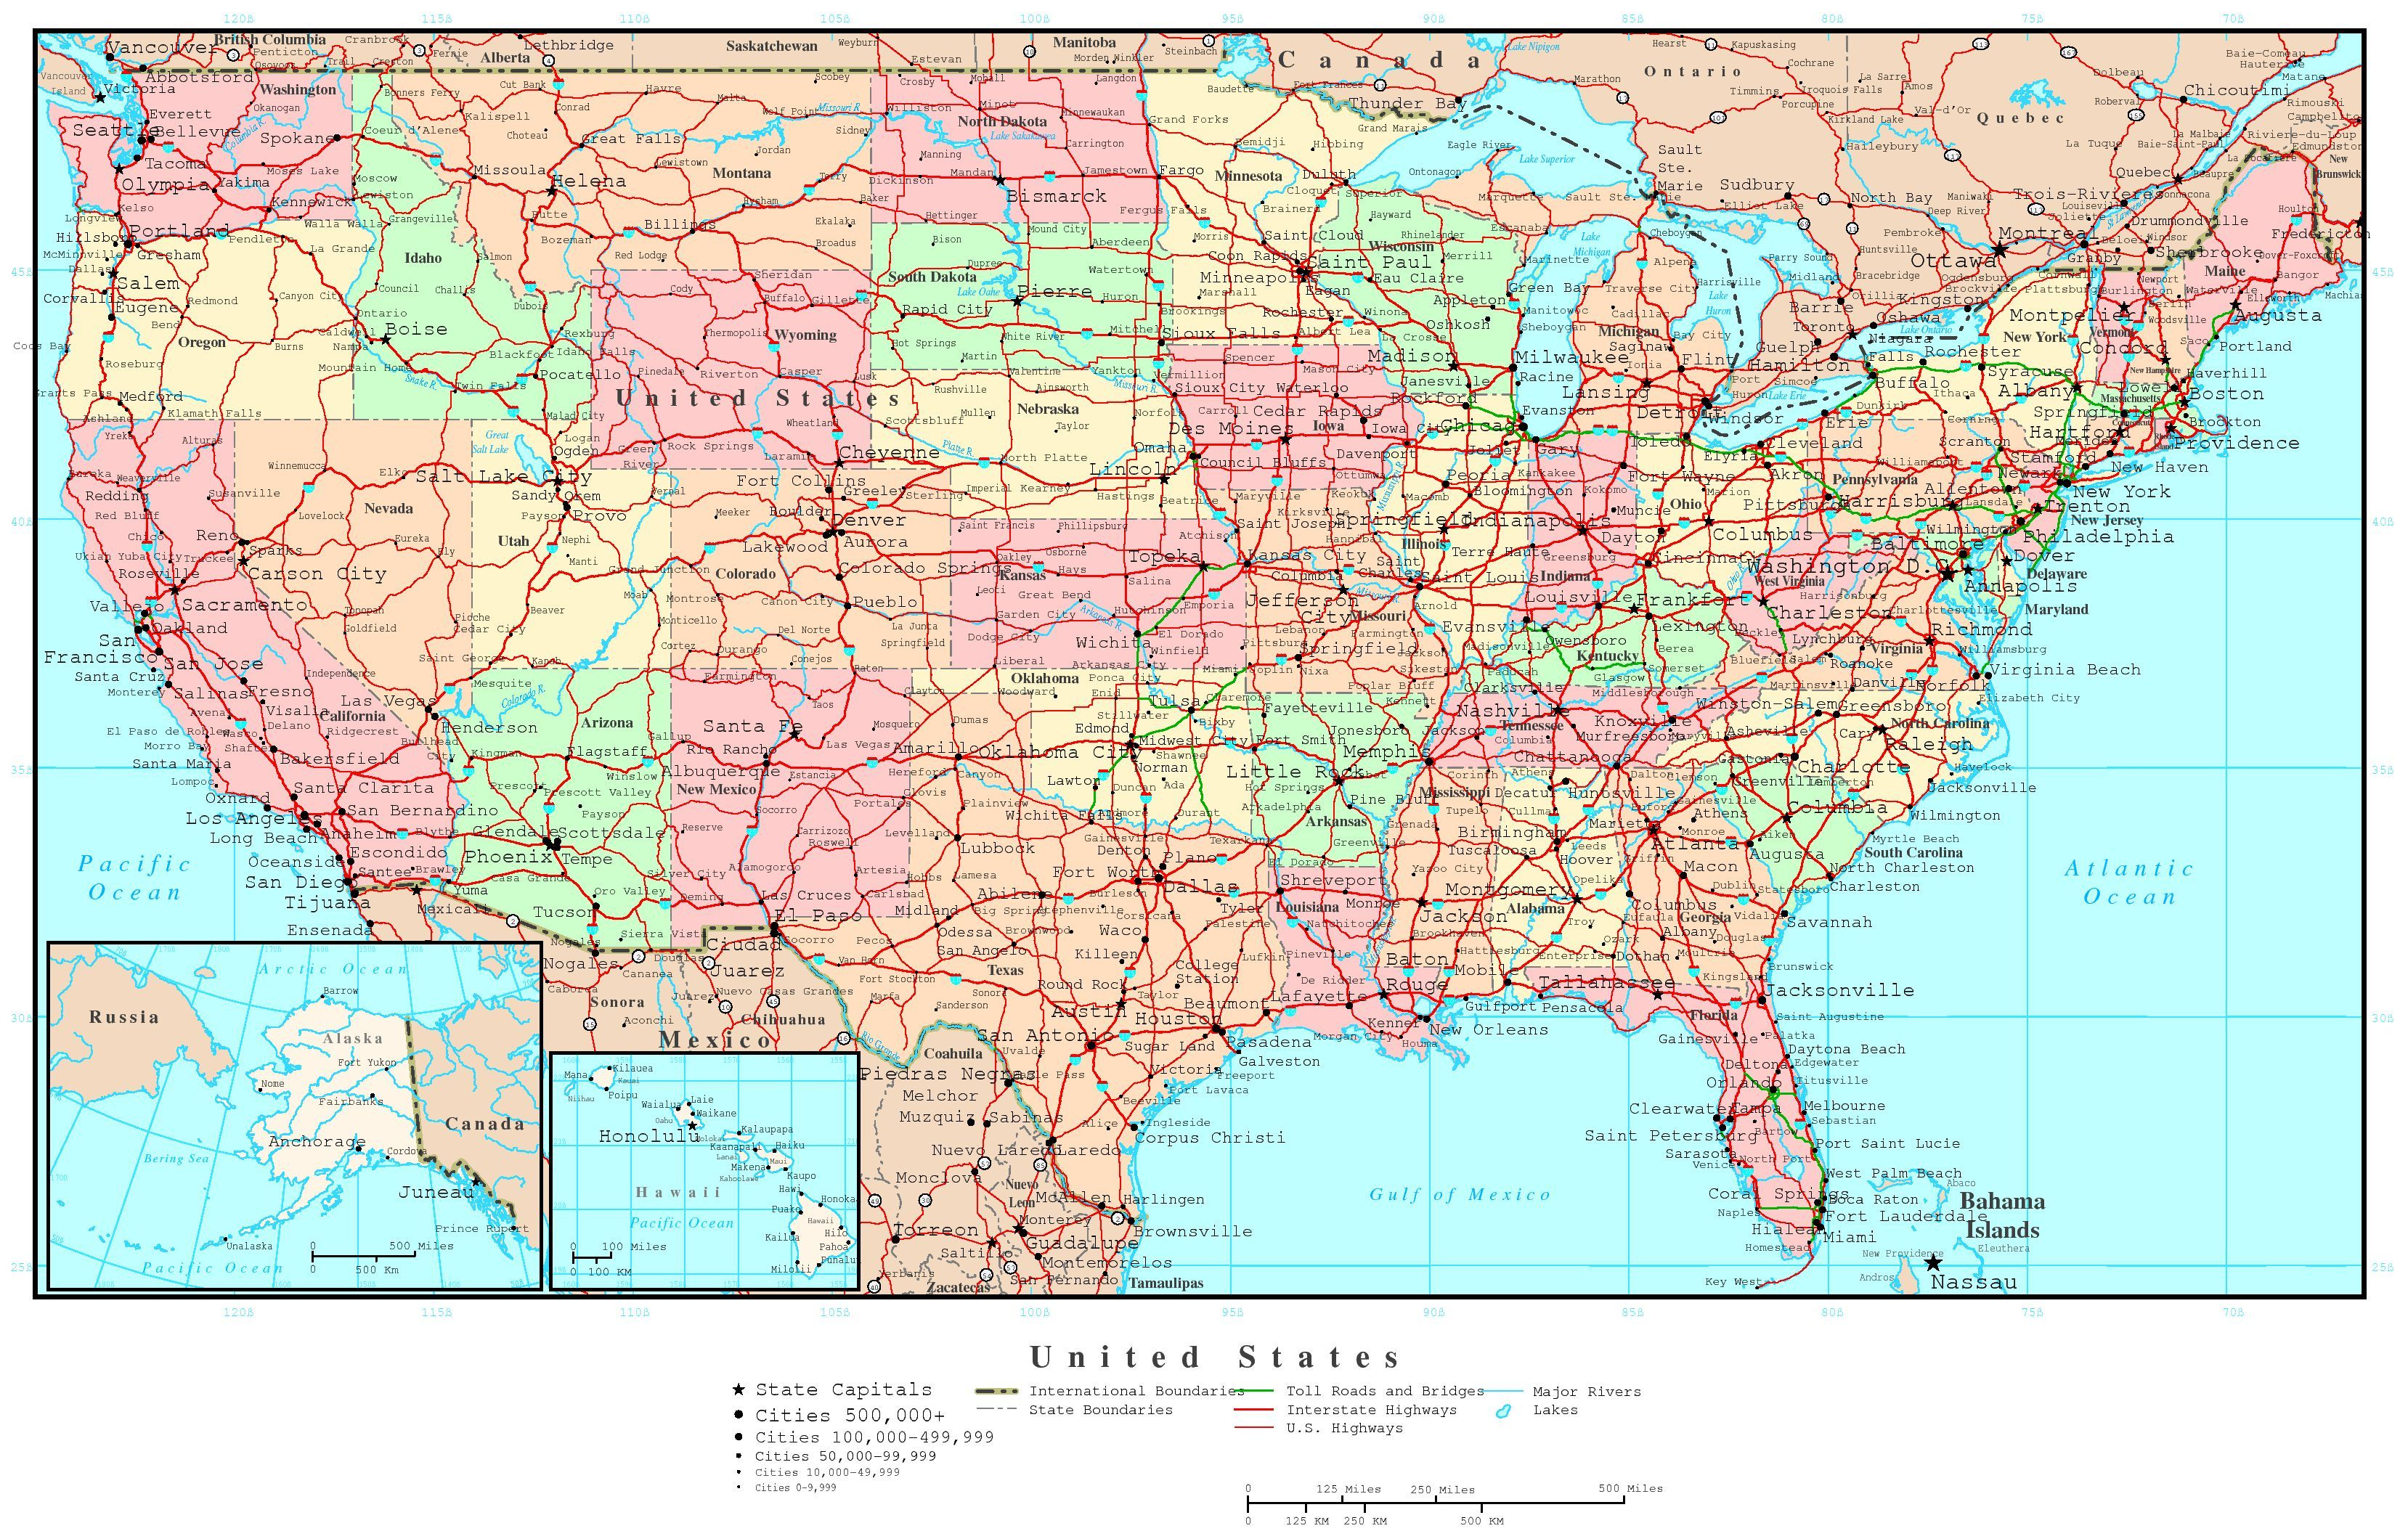 large_detailed_political_and_road_map_of_USA.jpg (3316